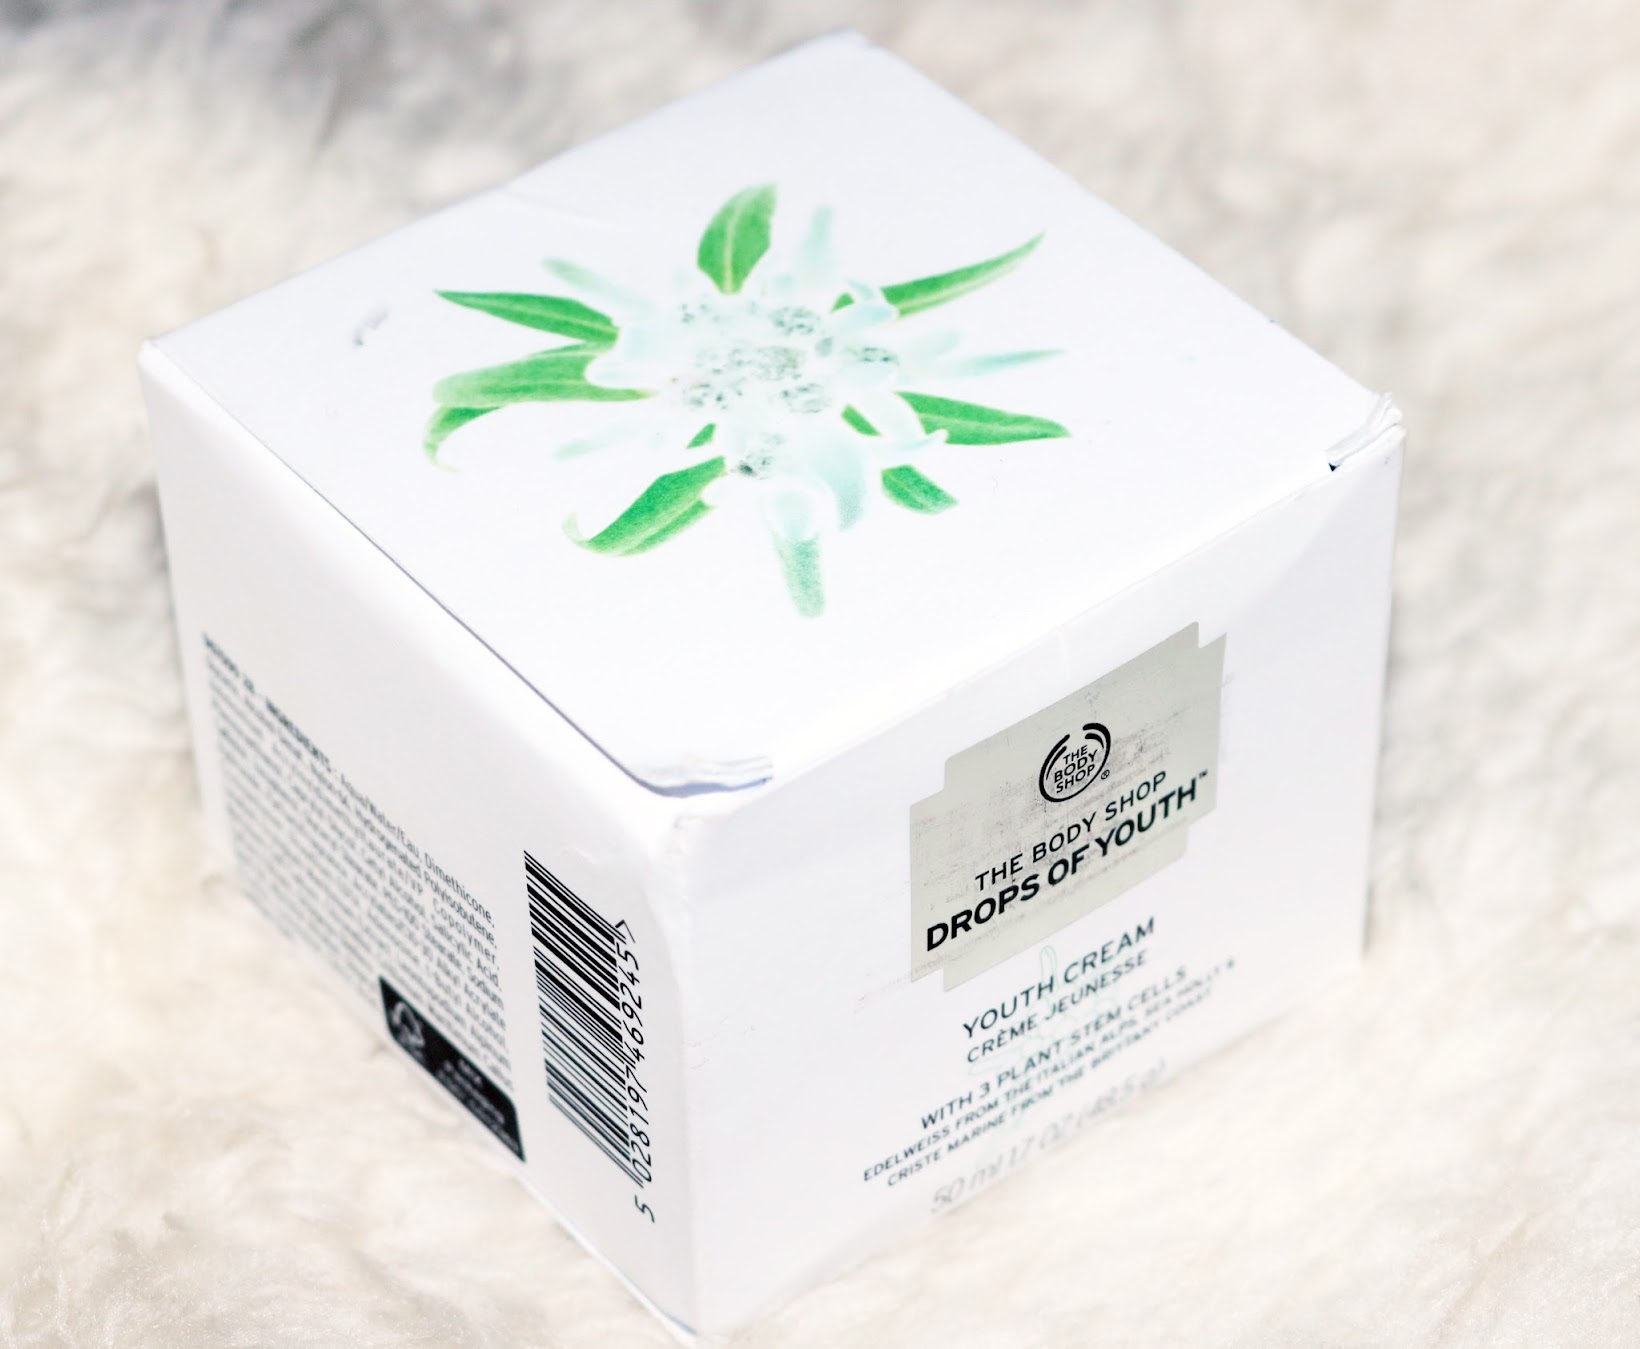 packaging, Indian beauty blogger, review, skincare, The Body Shop, The Body Shop Drops of Youth Day Cream review, The Body Shop Drops of Youth, best moisturizing creams in India, day cream, The Body Shop Drops of Youth day cream swatch